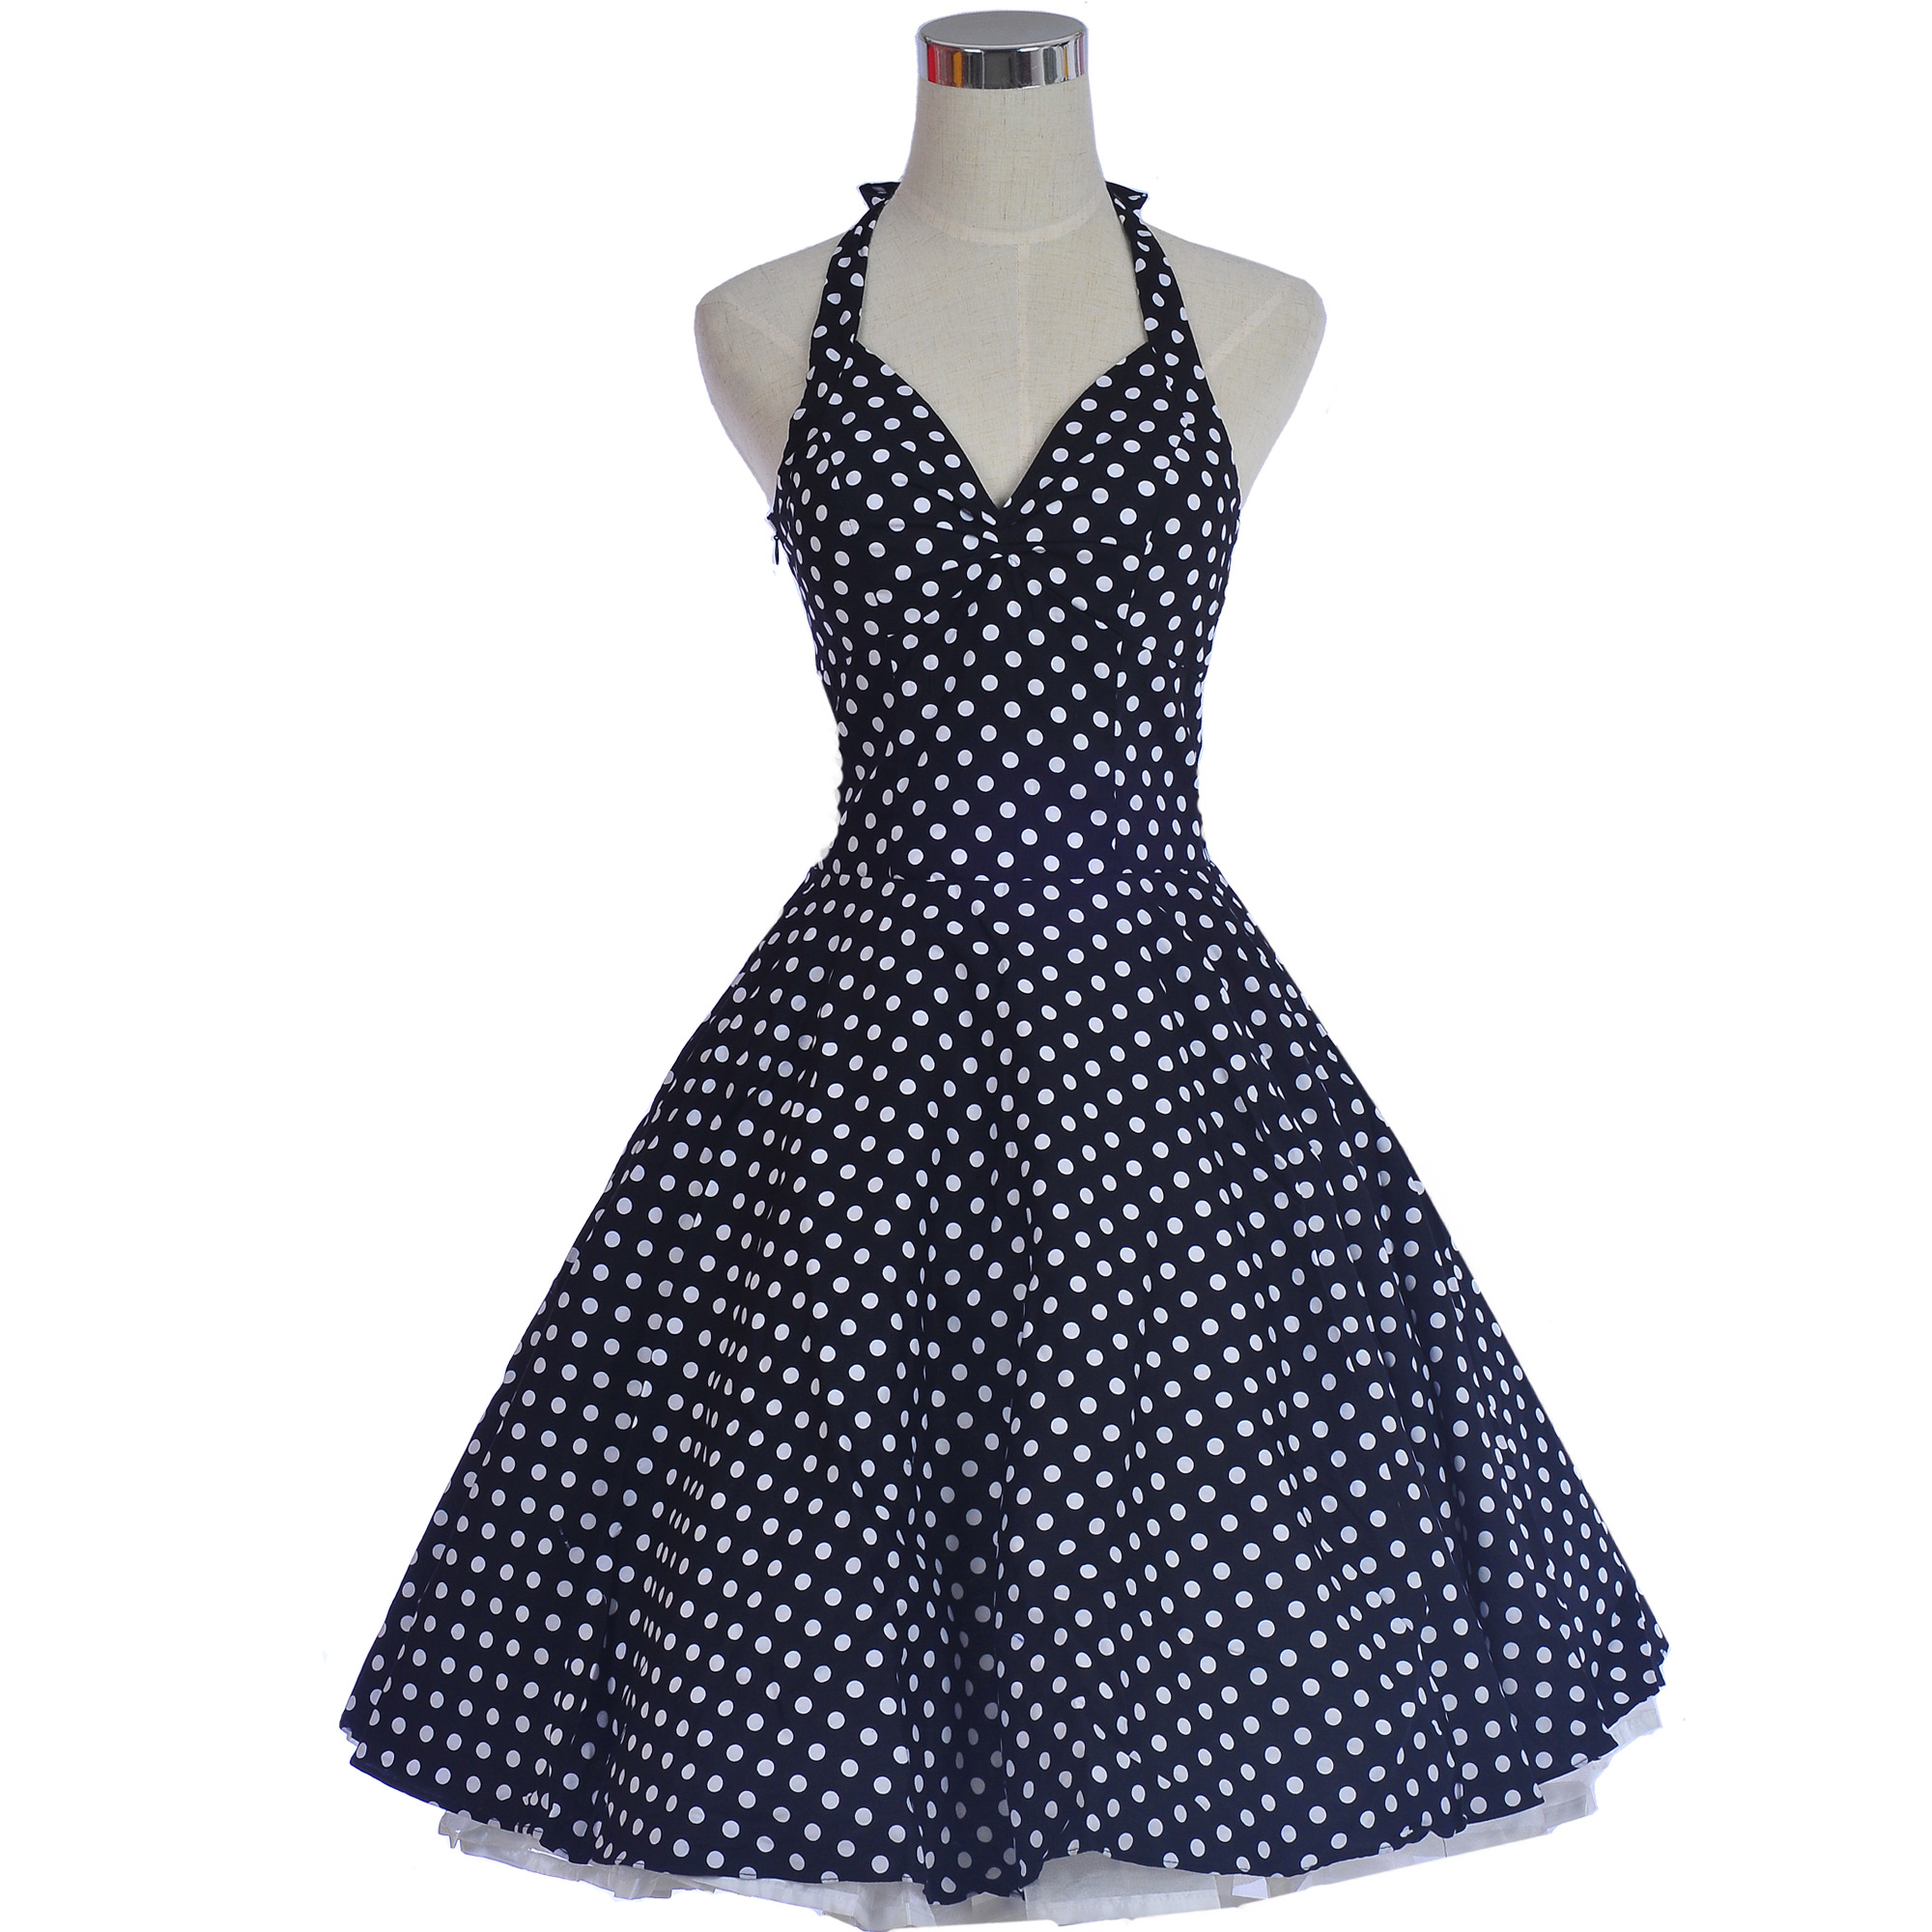 1950s 1960s Swing Polka Dot Retro Rockabilly Dress Ball Gown Party ...